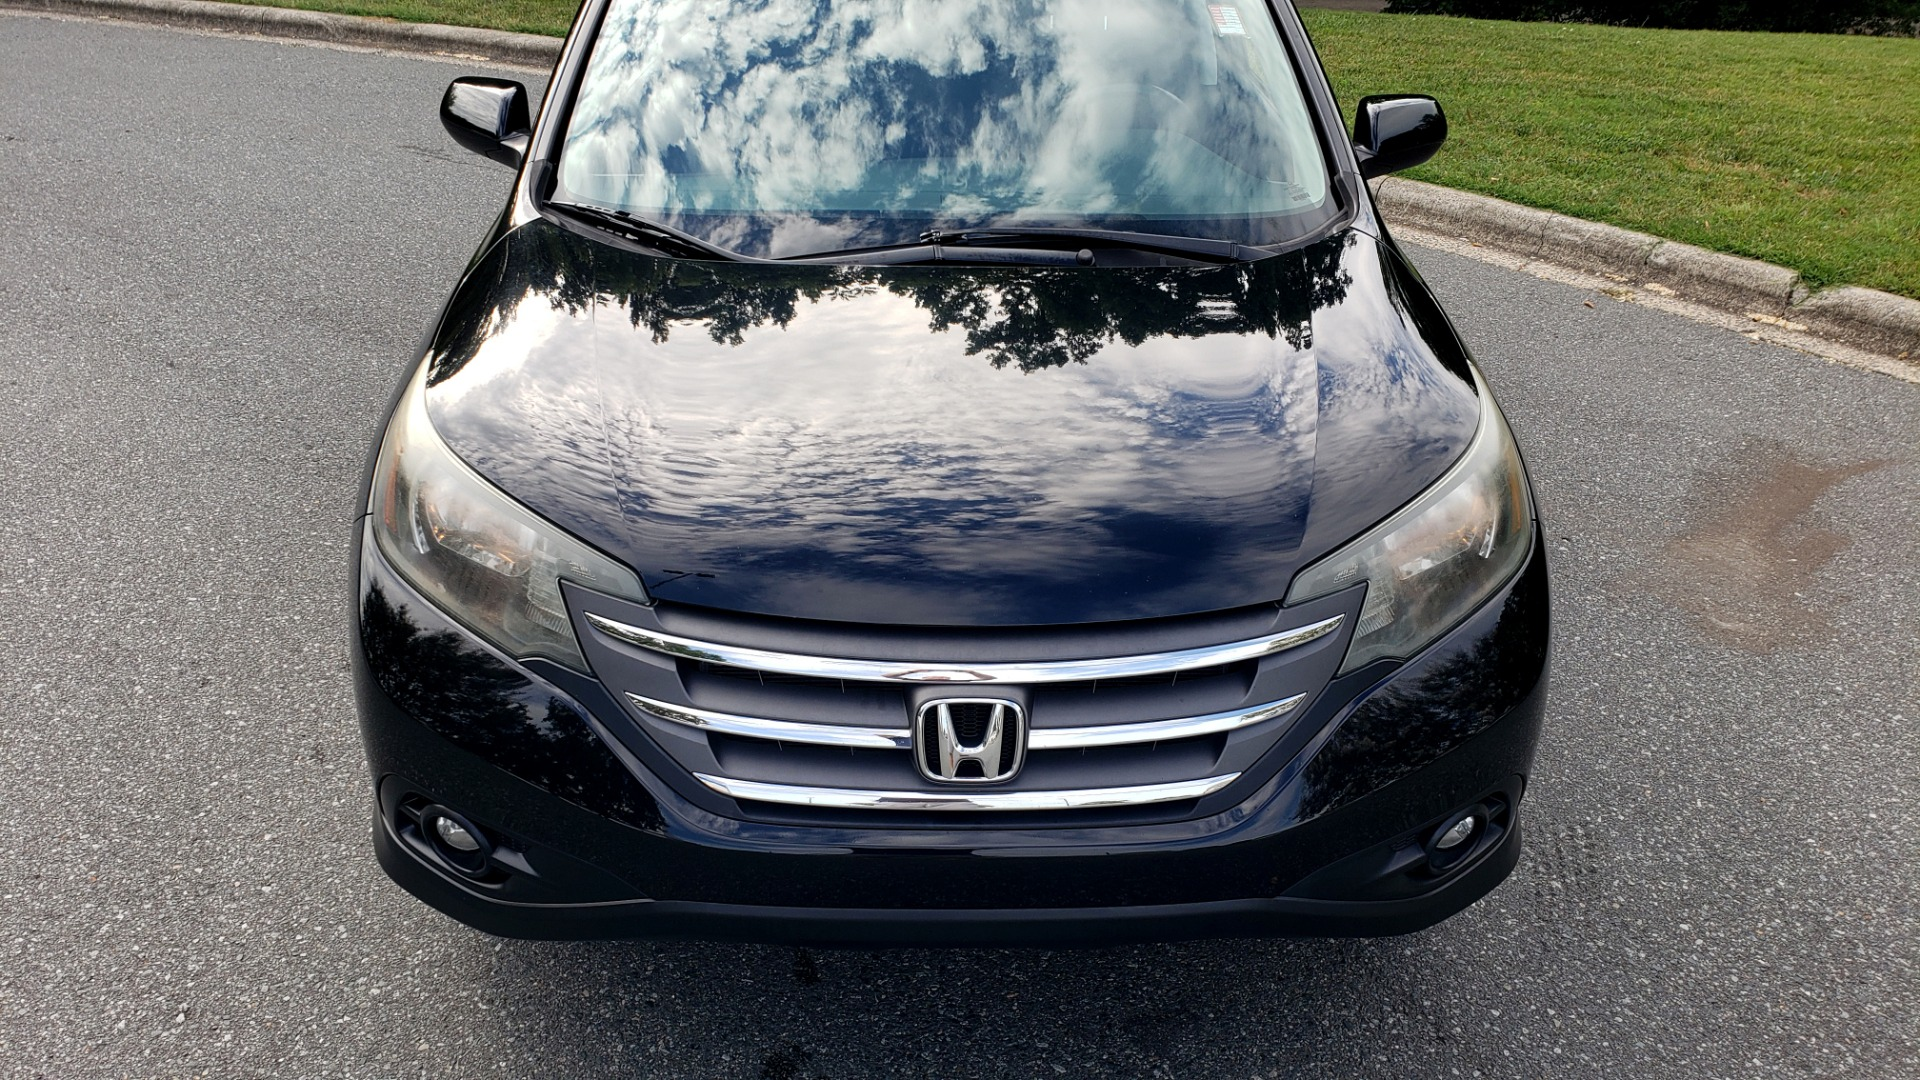 Used 2012 Honda CR-V EX-L / AWD / 5DR / SUNROOF / HEATED SEATS / REARVIEW for sale Sold at Formula Imports in Charlotte NC 28227 22